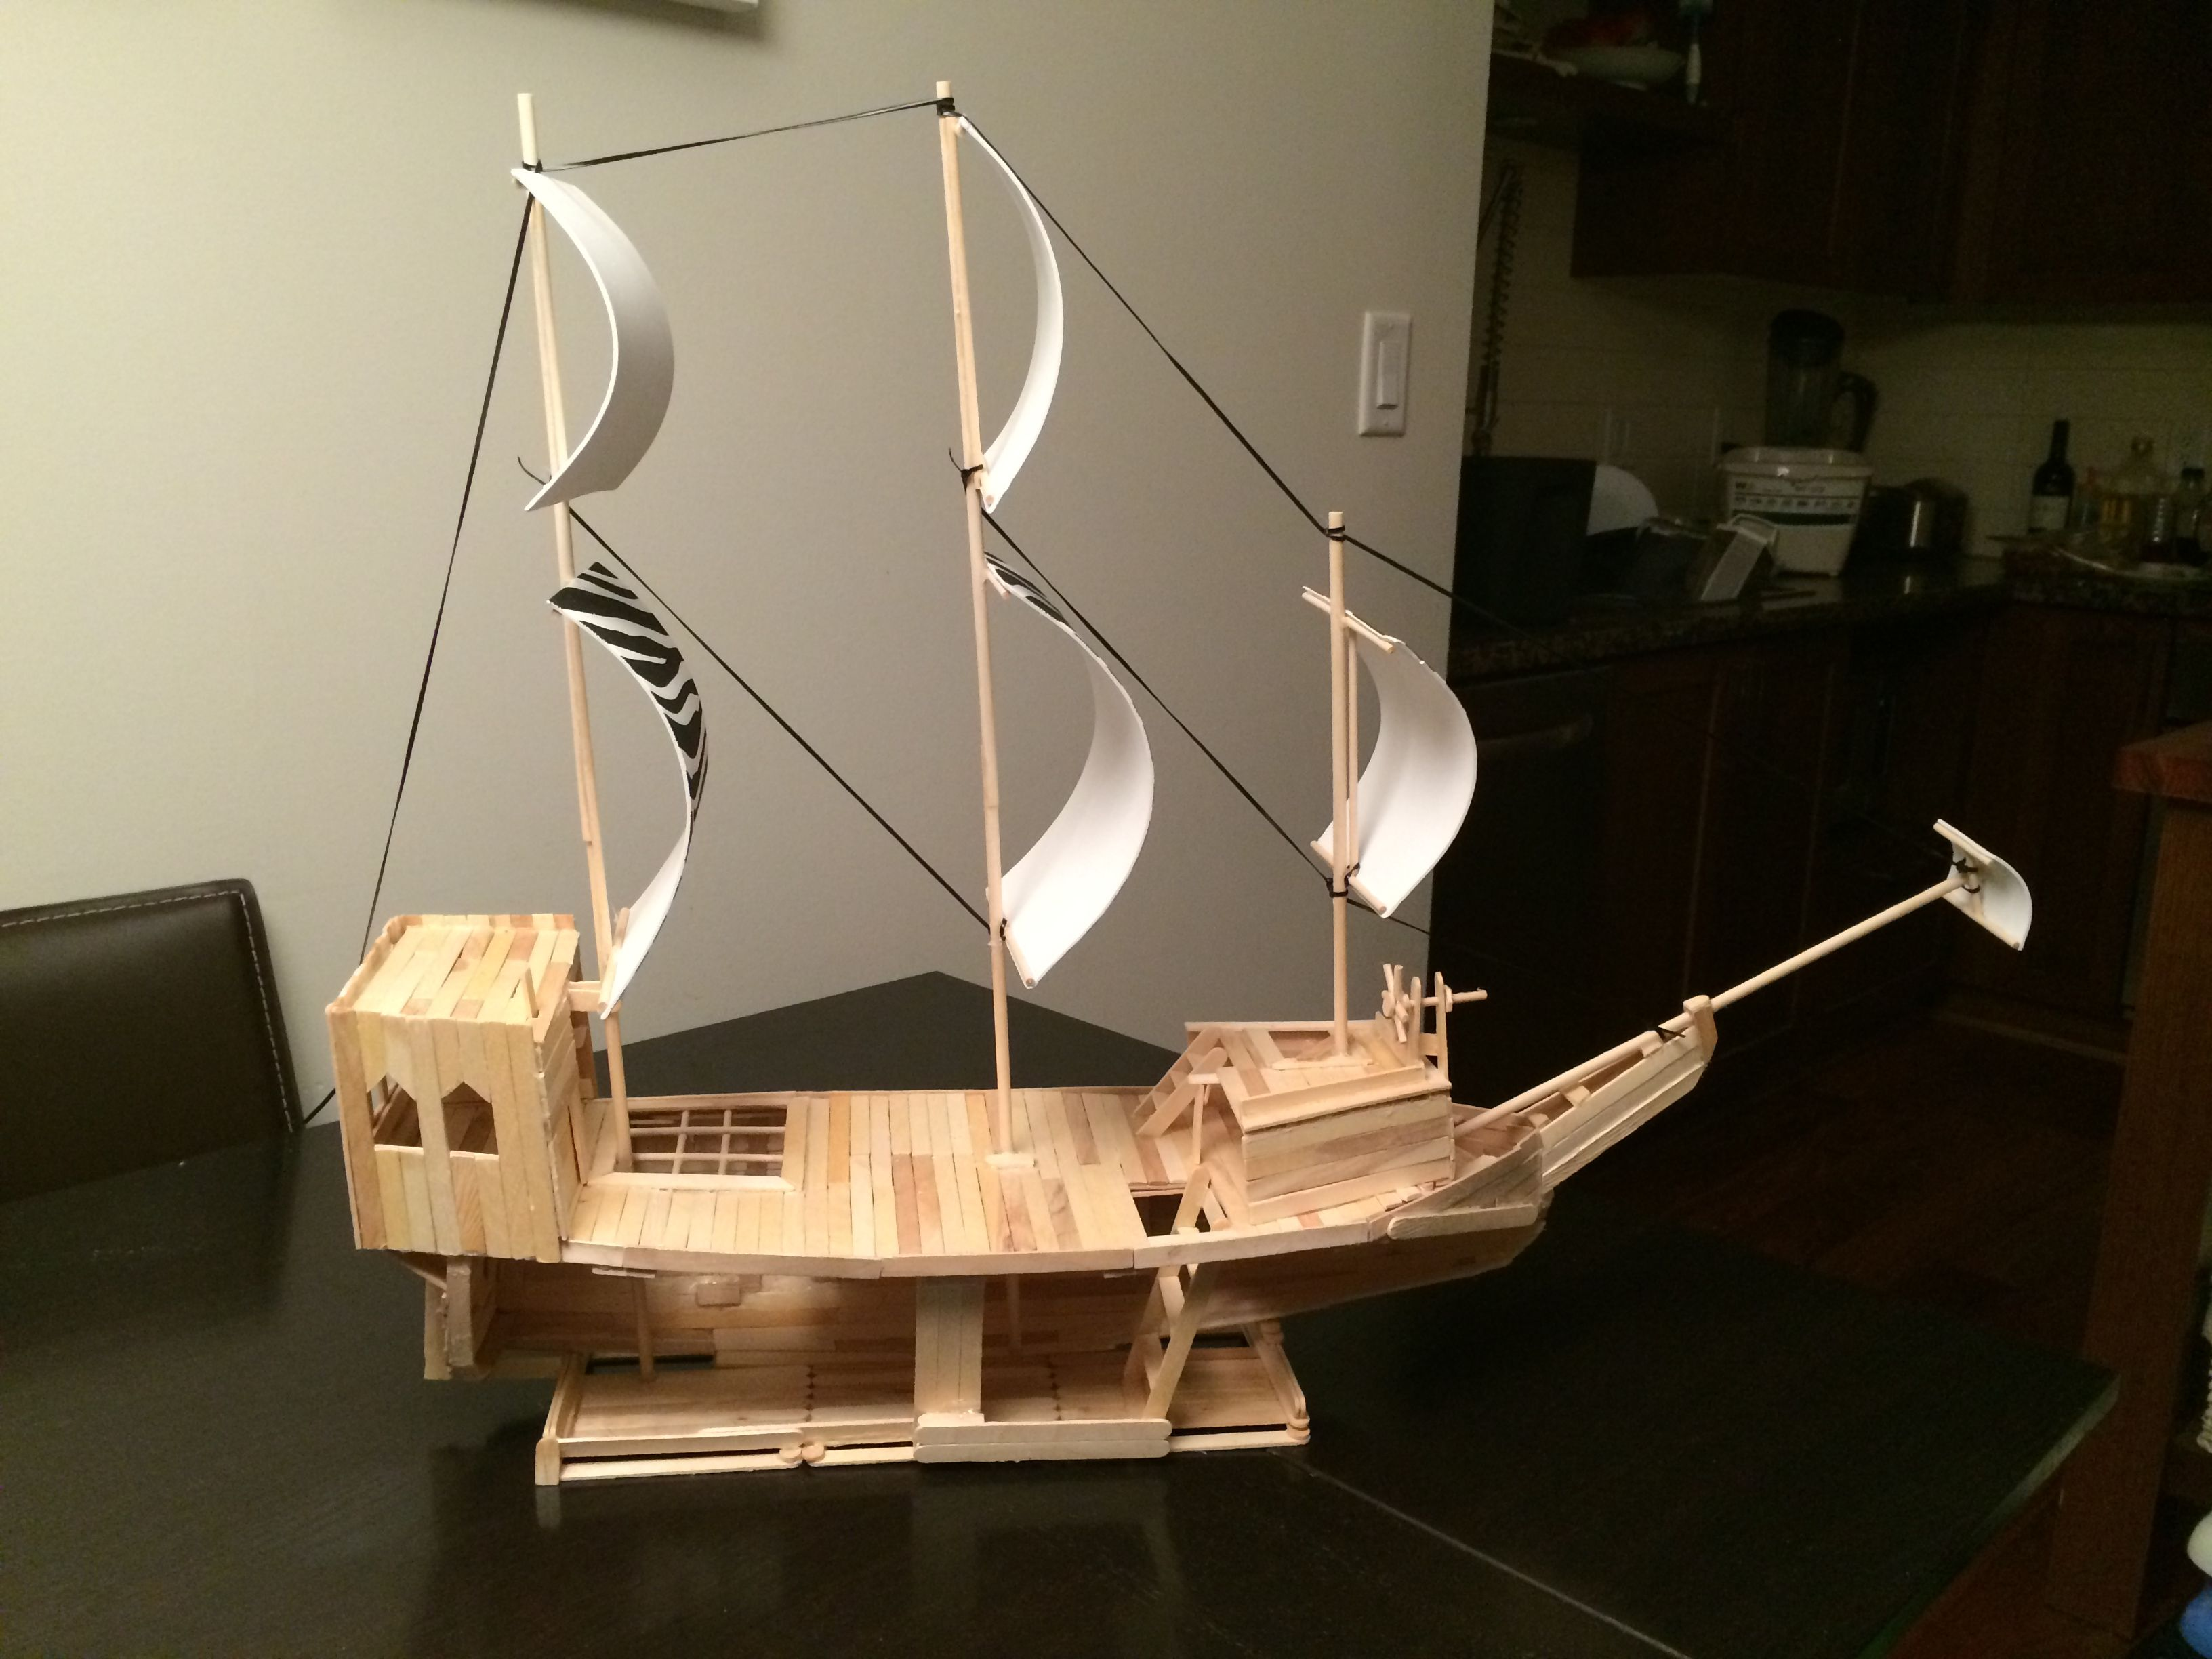 Popsicle stick church craft - Angle 2 Pirate Ship Made Out Of Popsicle Sticks Wooden Dowels And Some